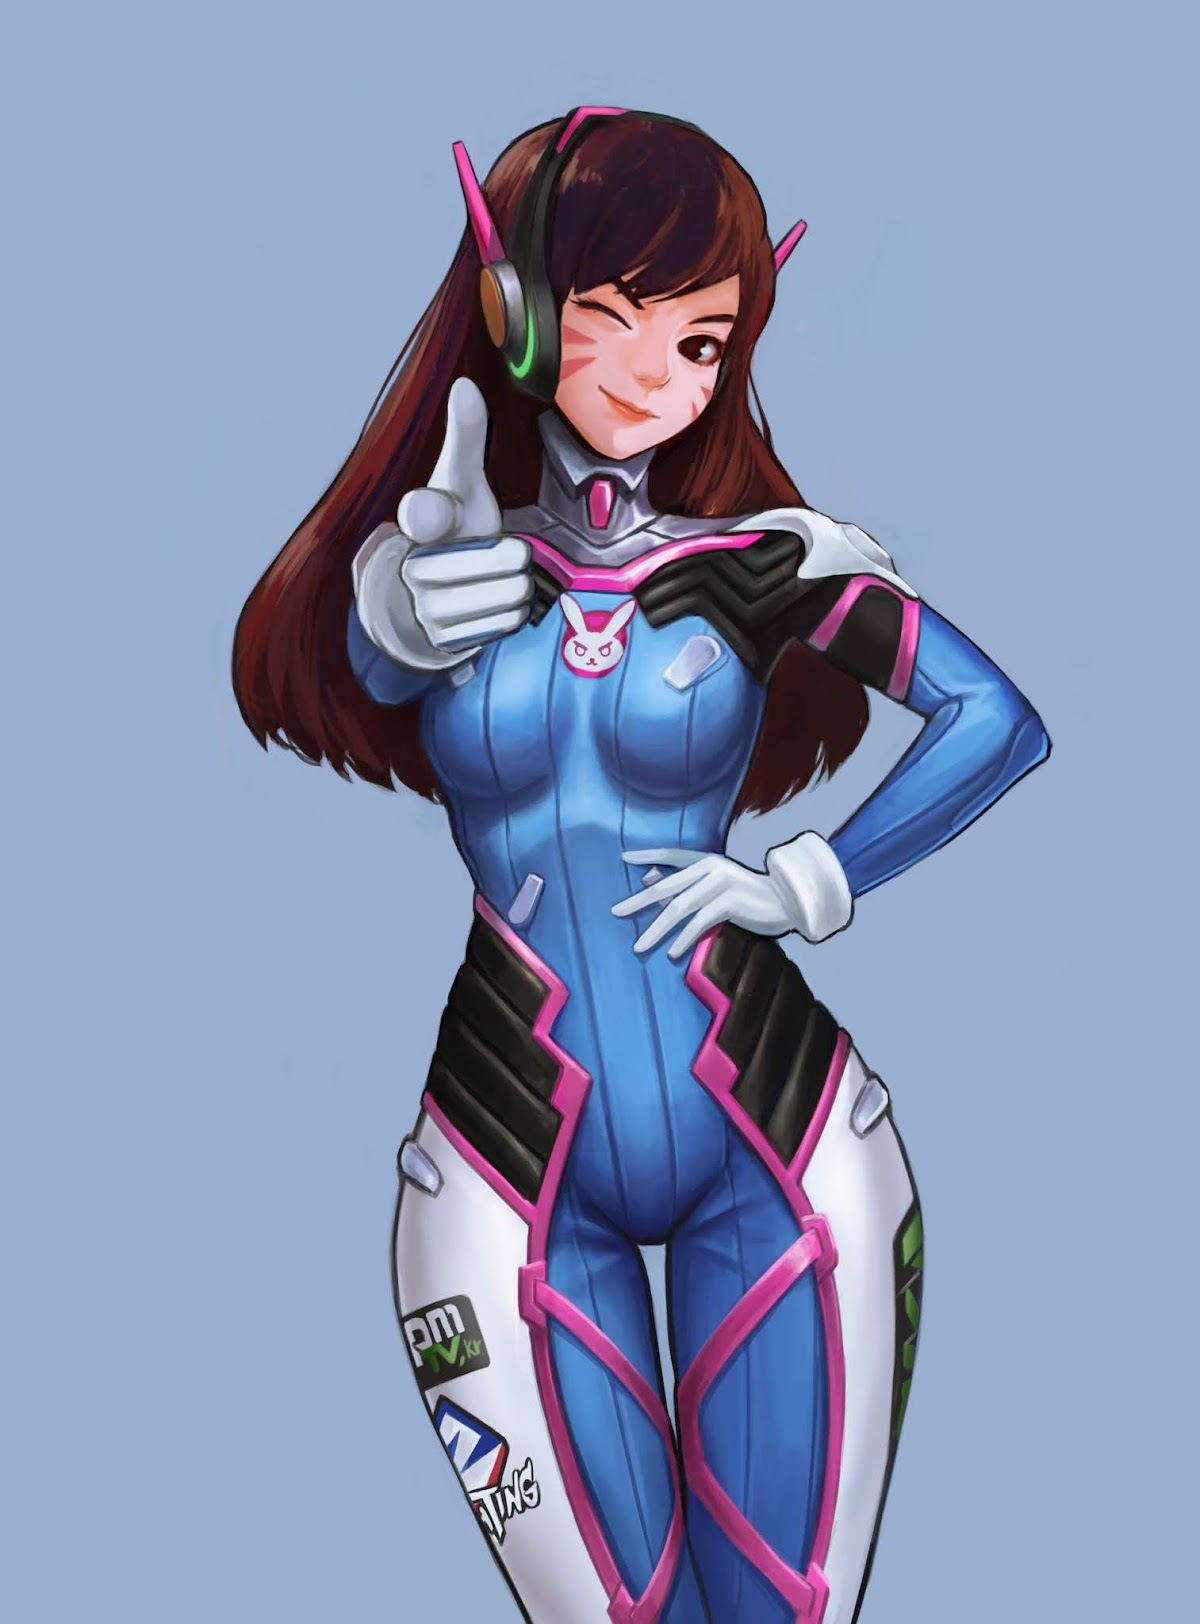 Download Wallpaper D.VA Overwatch Fan Art Wallpaper HD Free